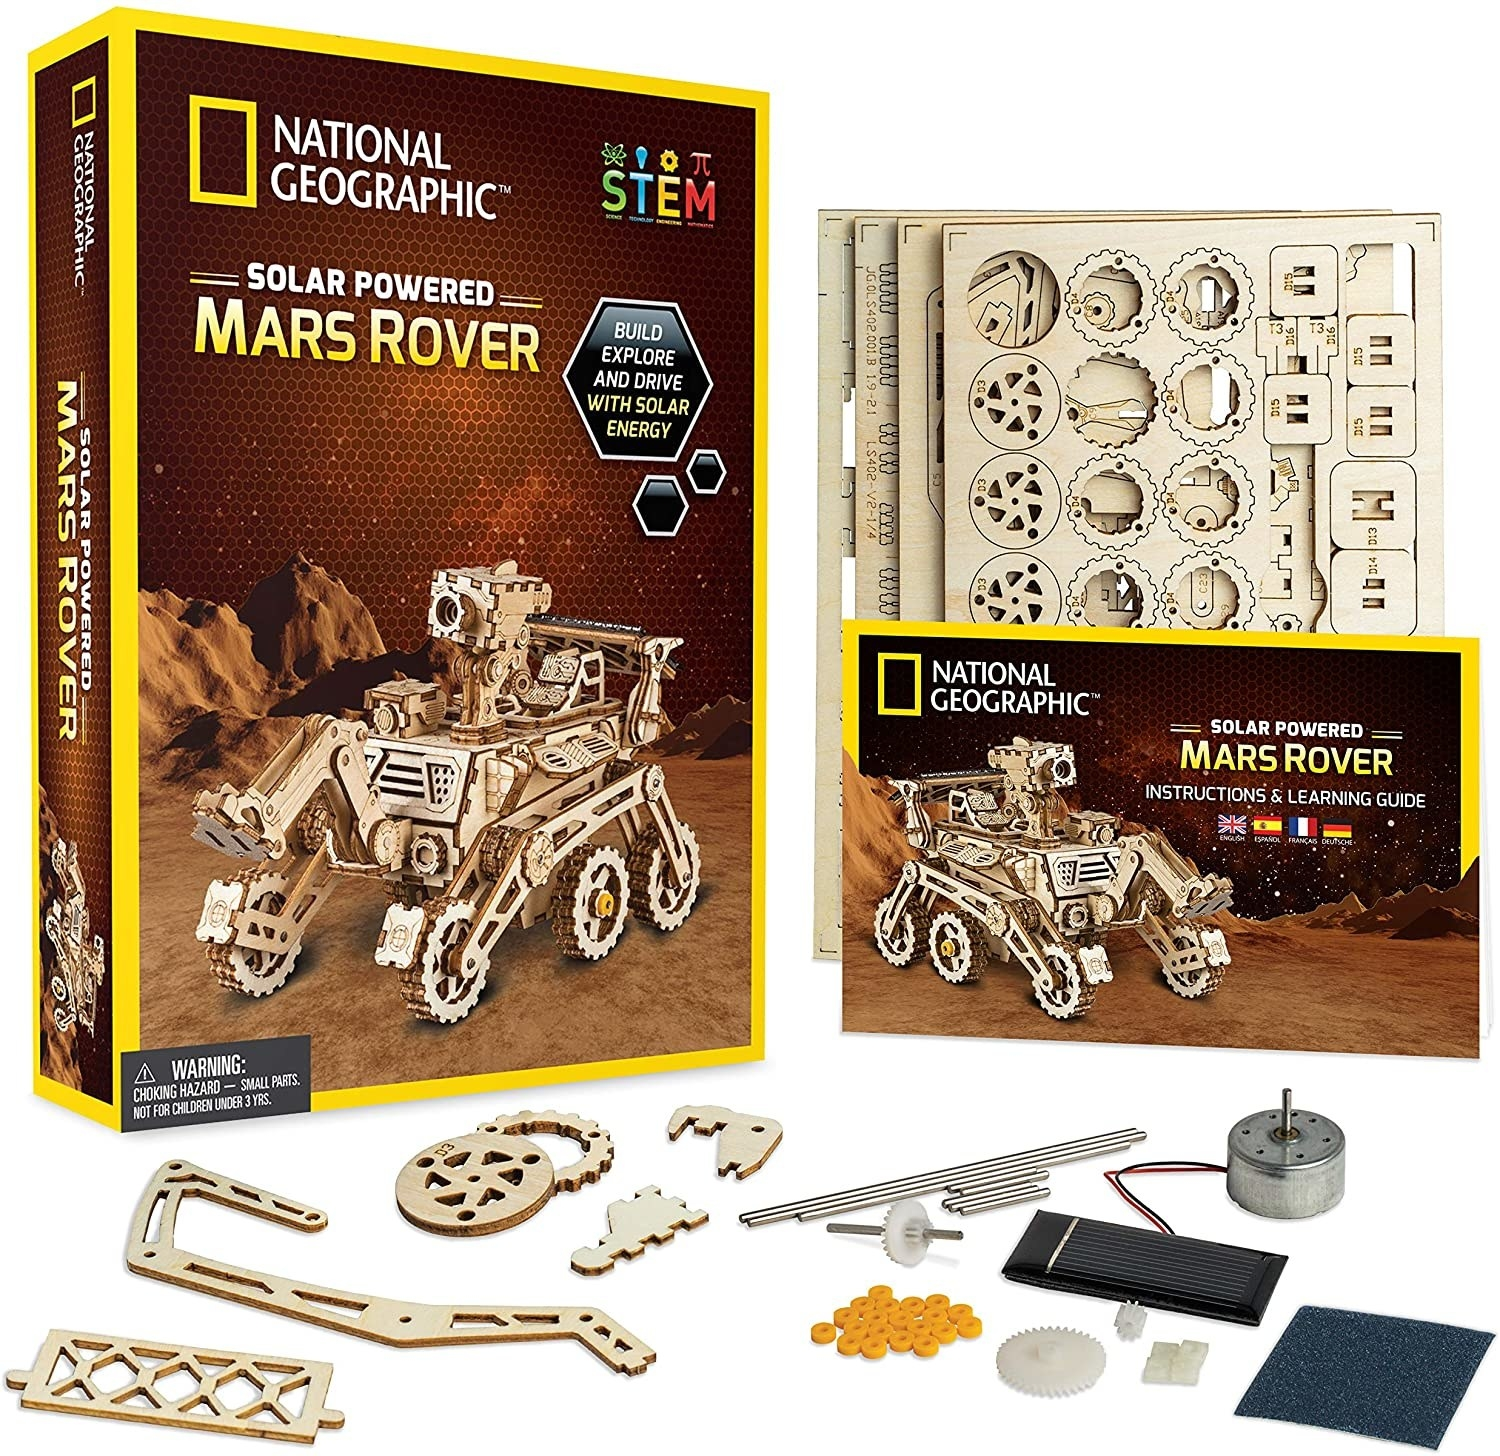 A wood model kit of a mars rover